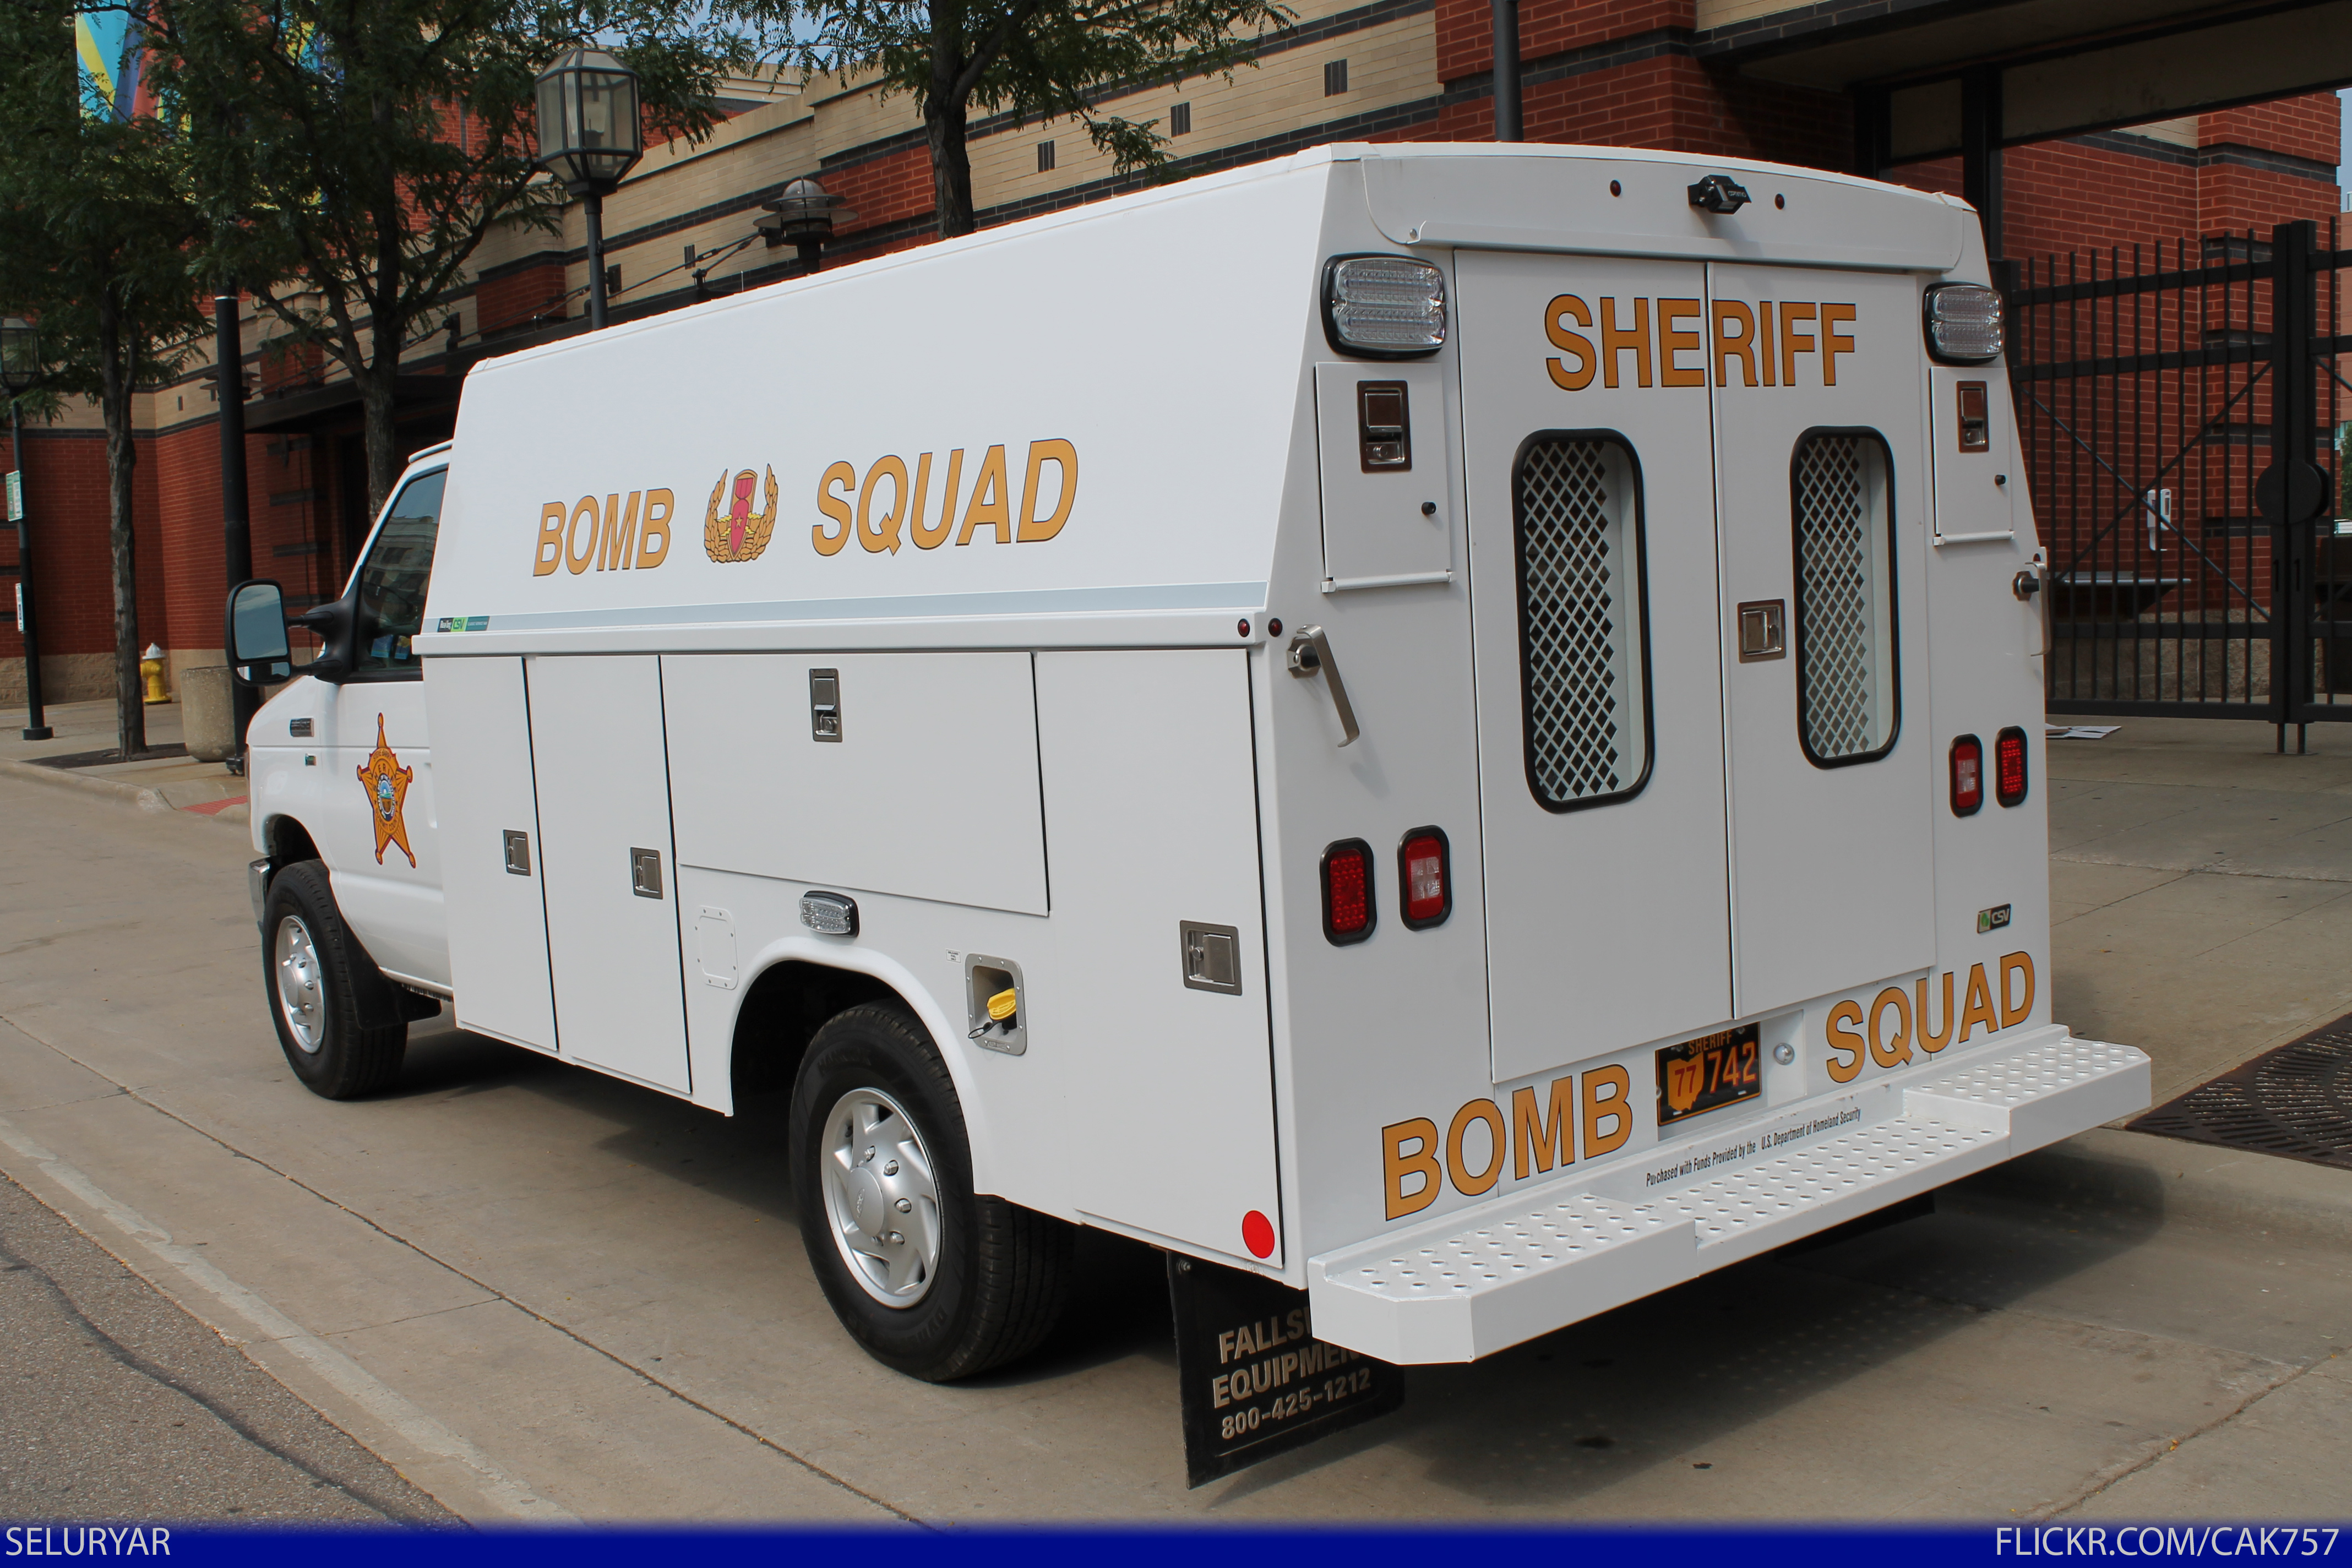 A white, tricked-out Ford E-350 truck labeled bomb squad